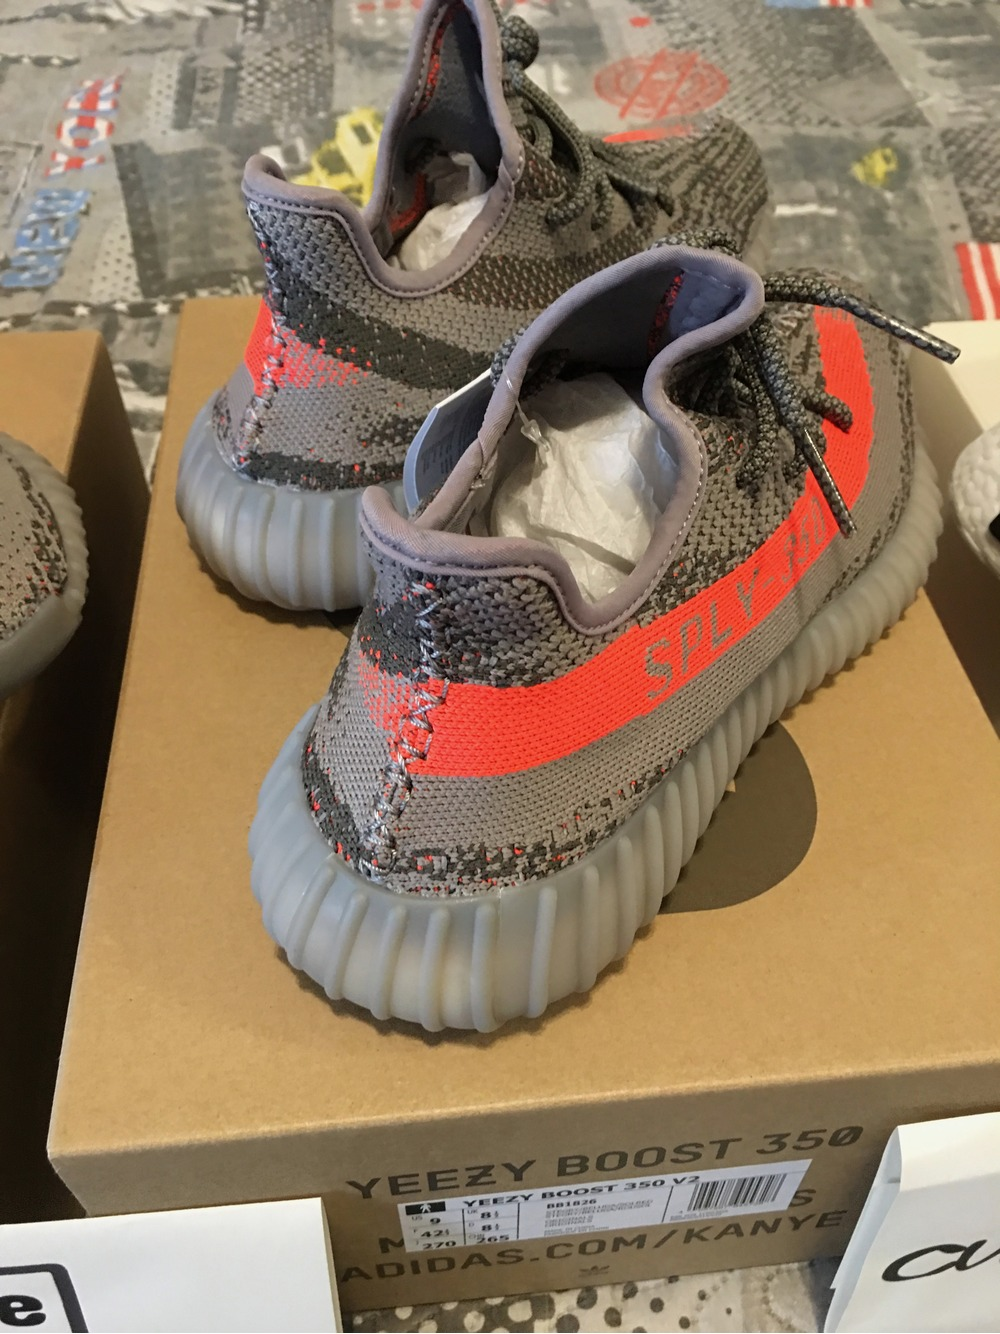 KoF Live: Unboxing The adidas Yeezy Boost 350 V2 Beluga Made Me